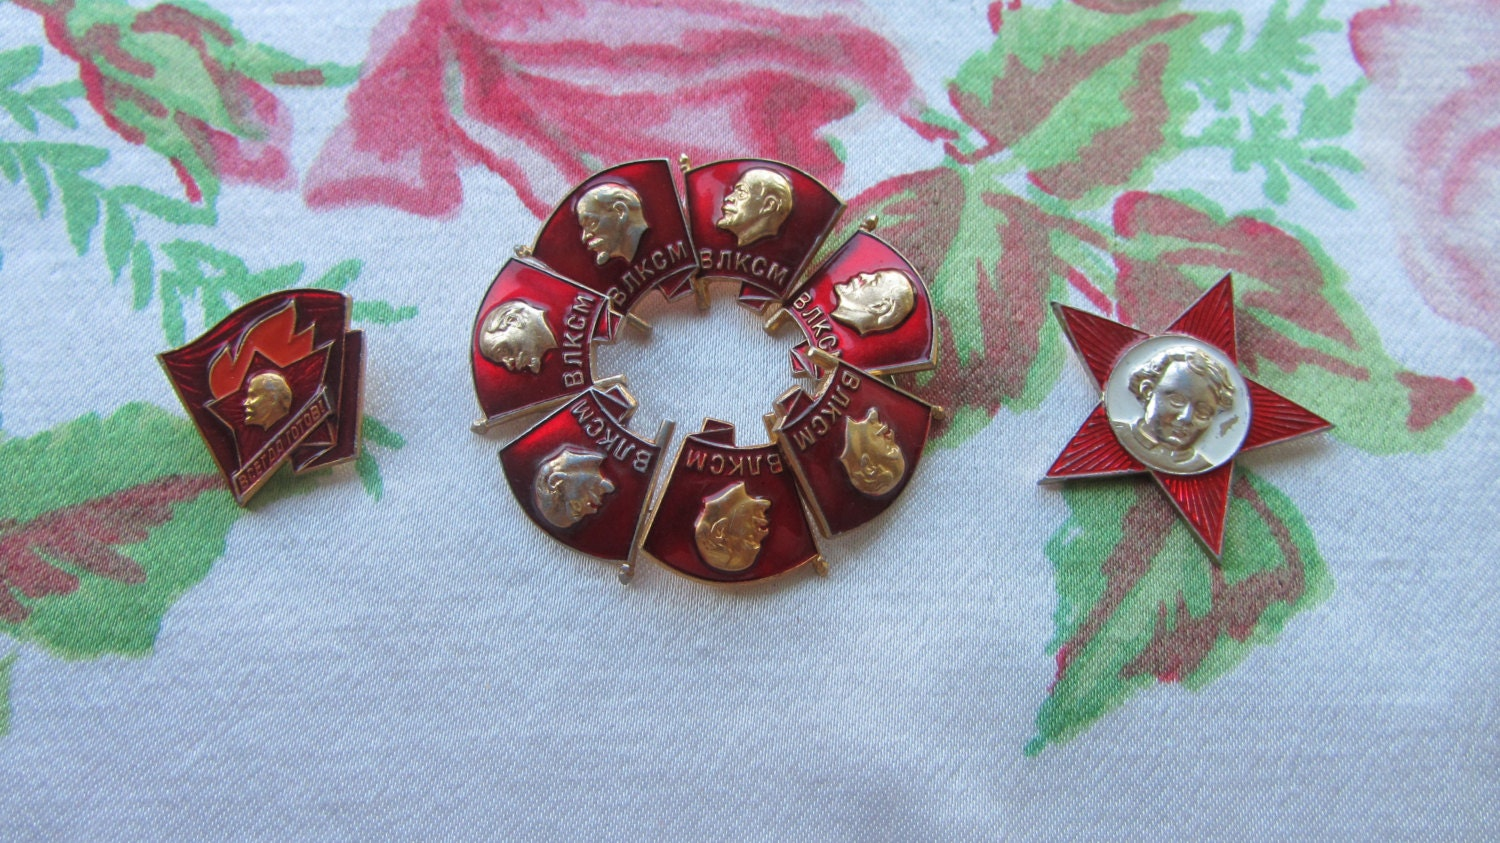 Set of USSR Badges, Metal Pins, 1960s - 1980s, Russian Pins, Souvenir Badges, So